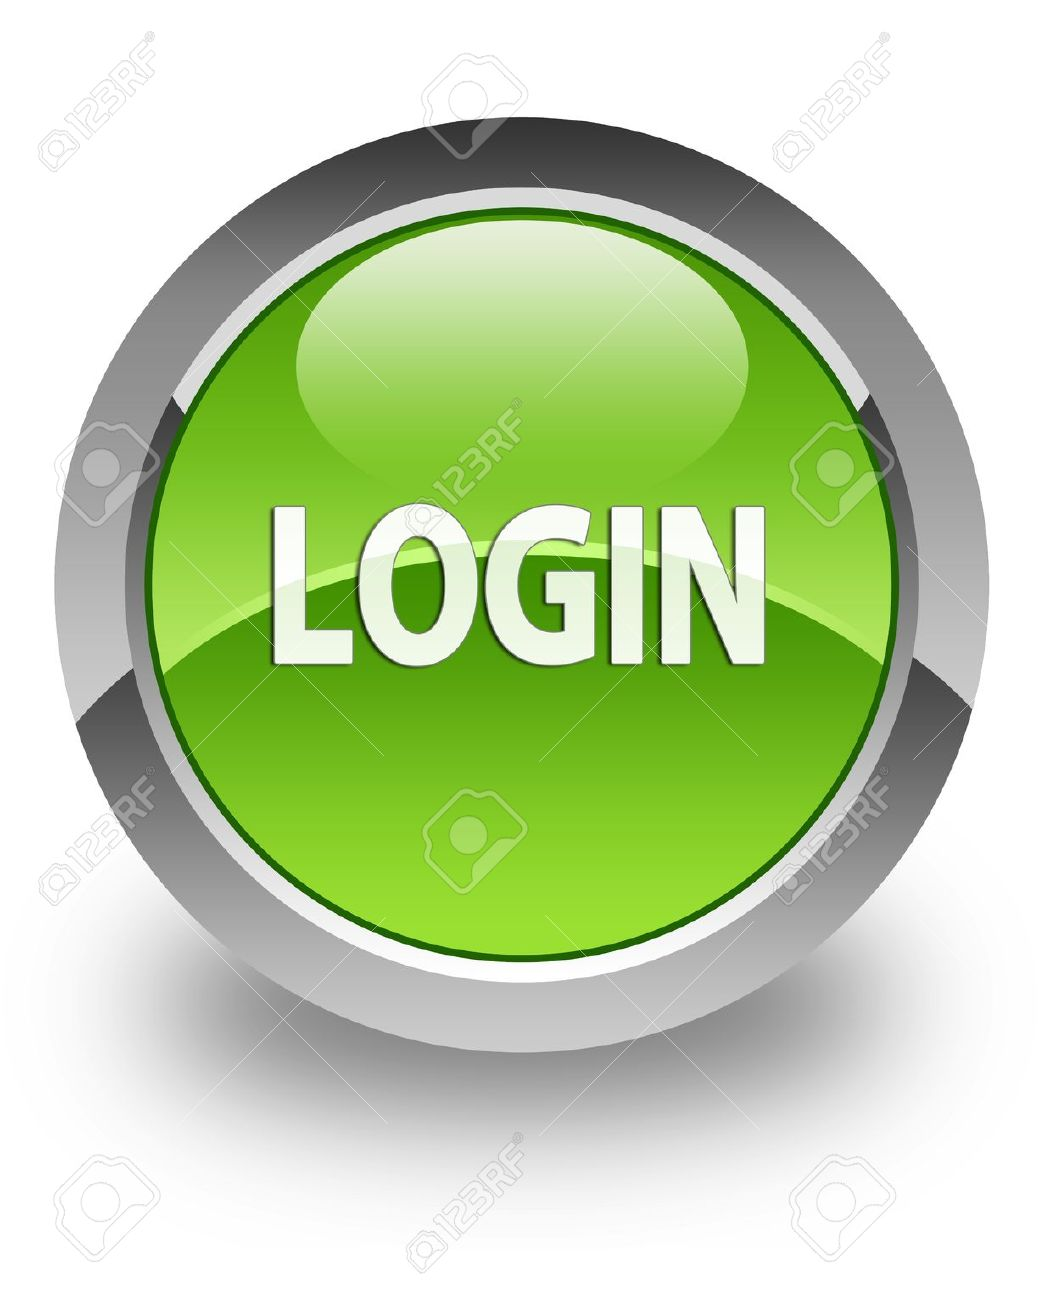 Login-icon-on